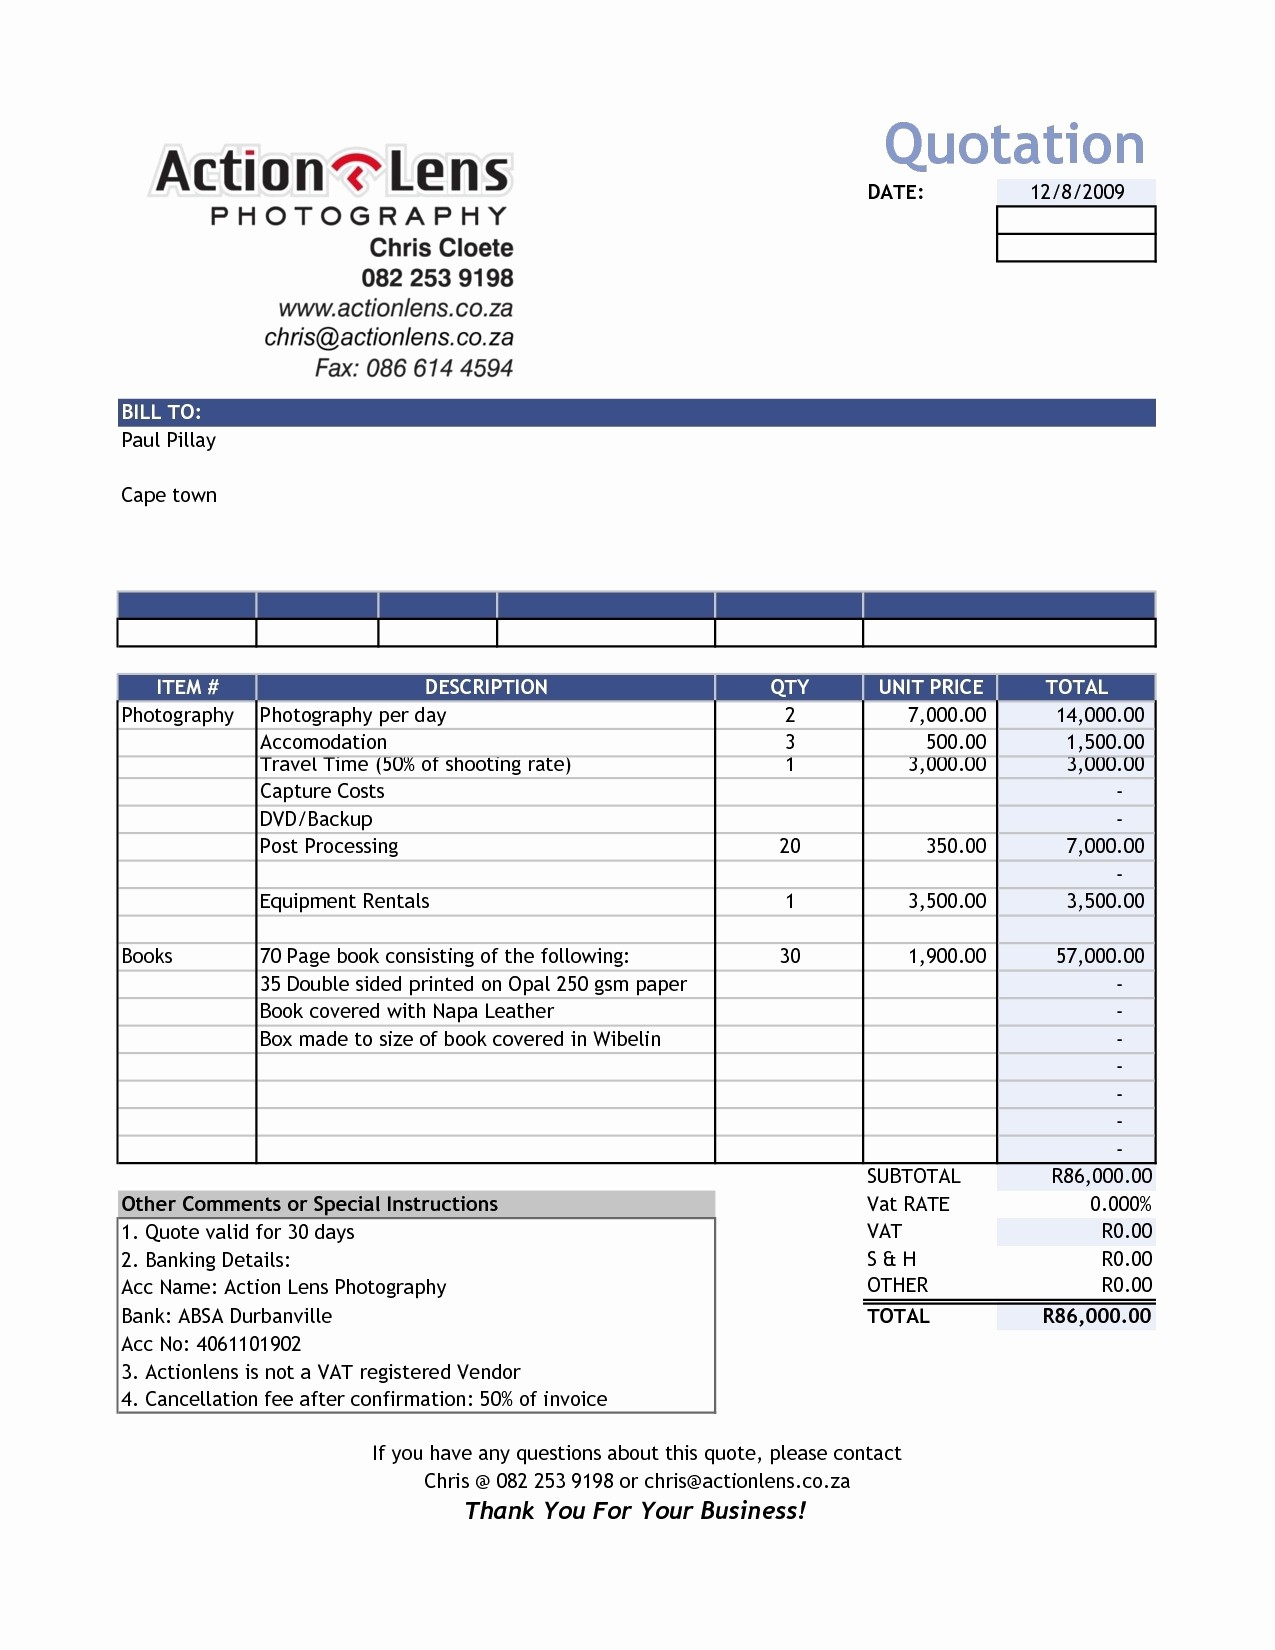 Invoice Bill format In Excel Inspirational Invoice format In Excel Sheet Free Download